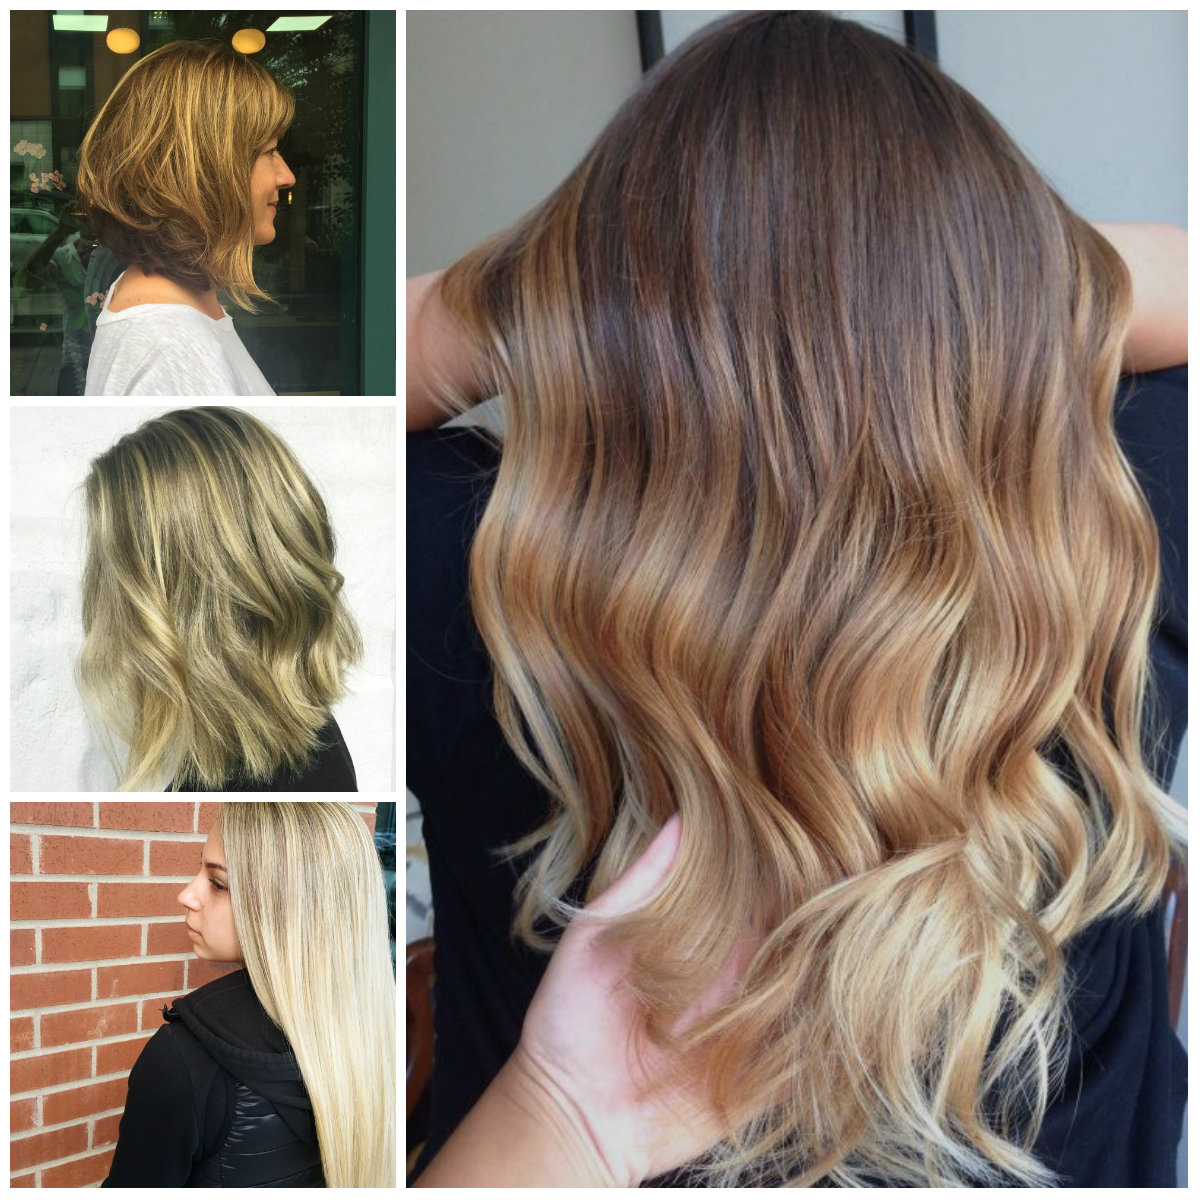 Breathtaking Sandy Blonde Hair Ideas for 2017